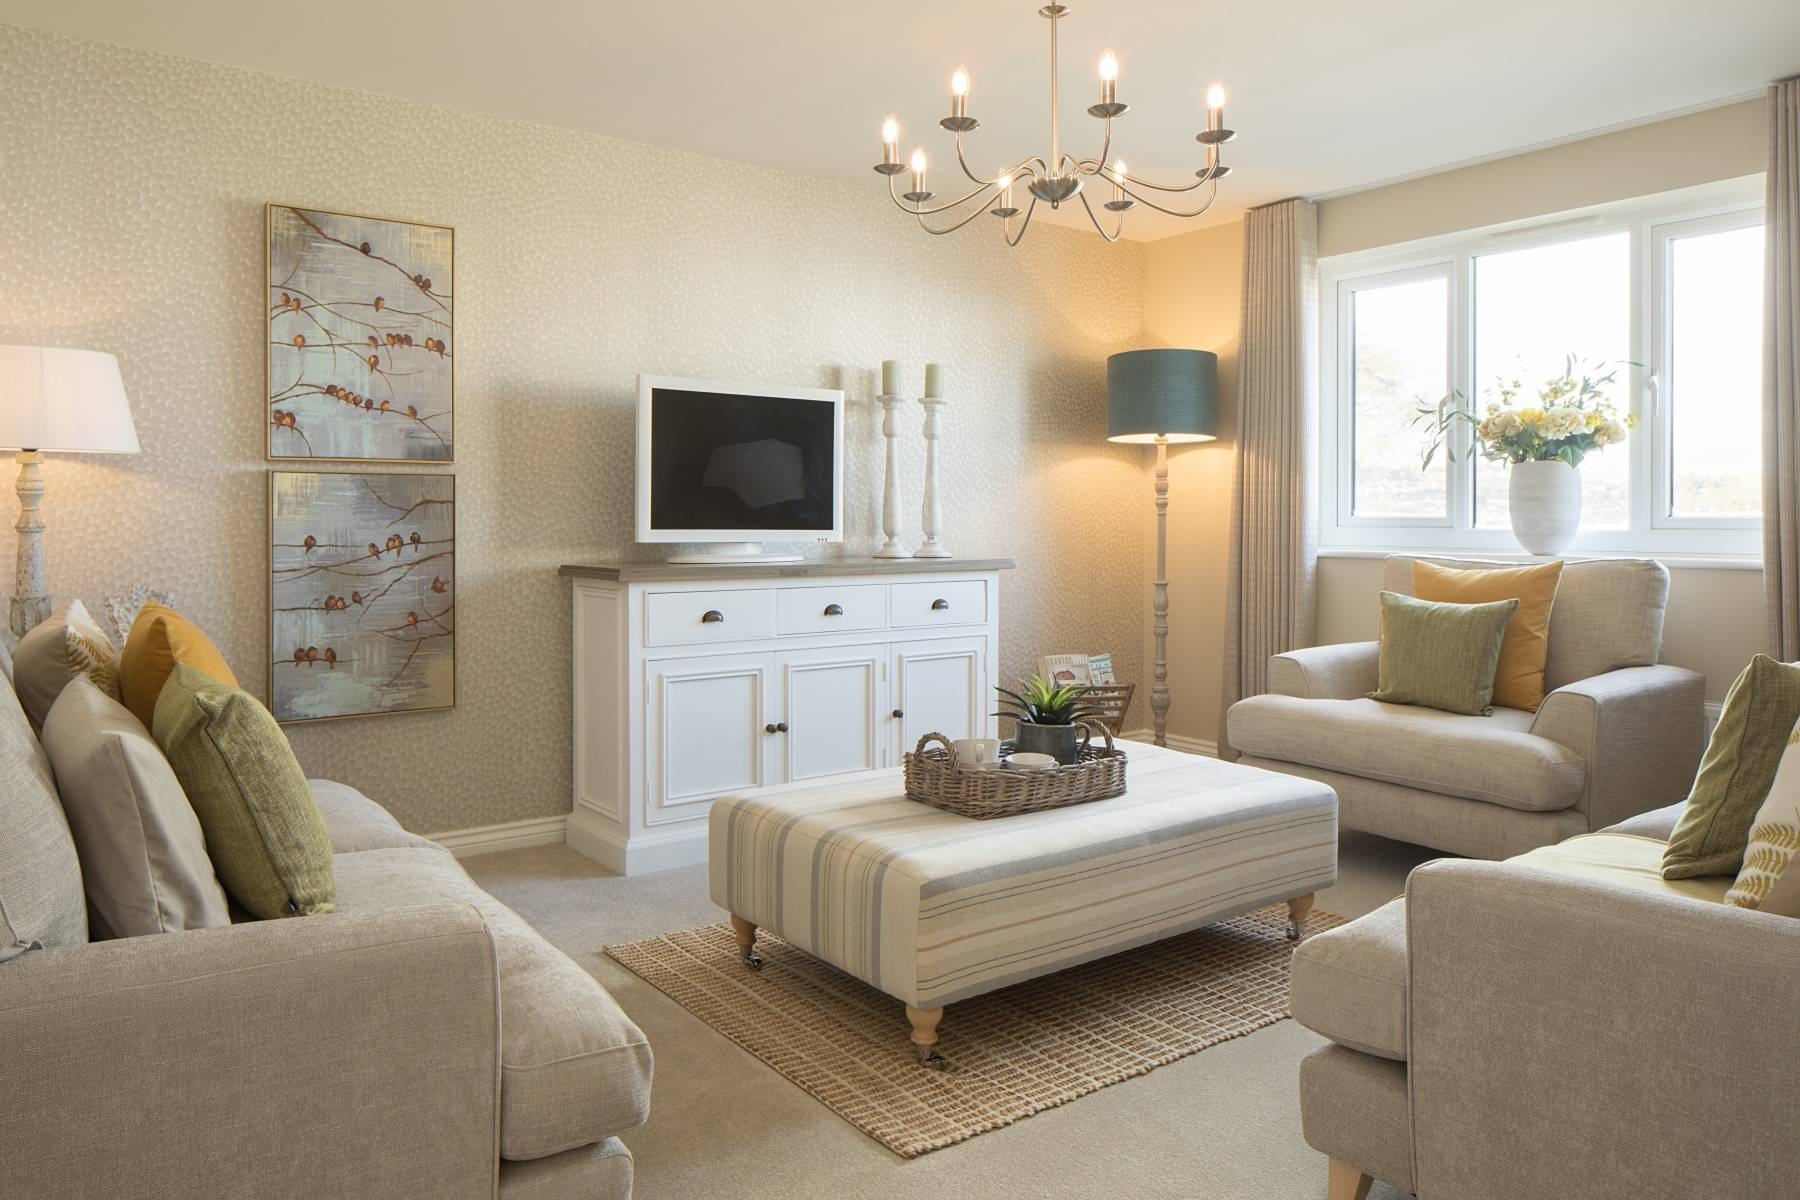 TW Exeter - Cranbrook - Midford example living room